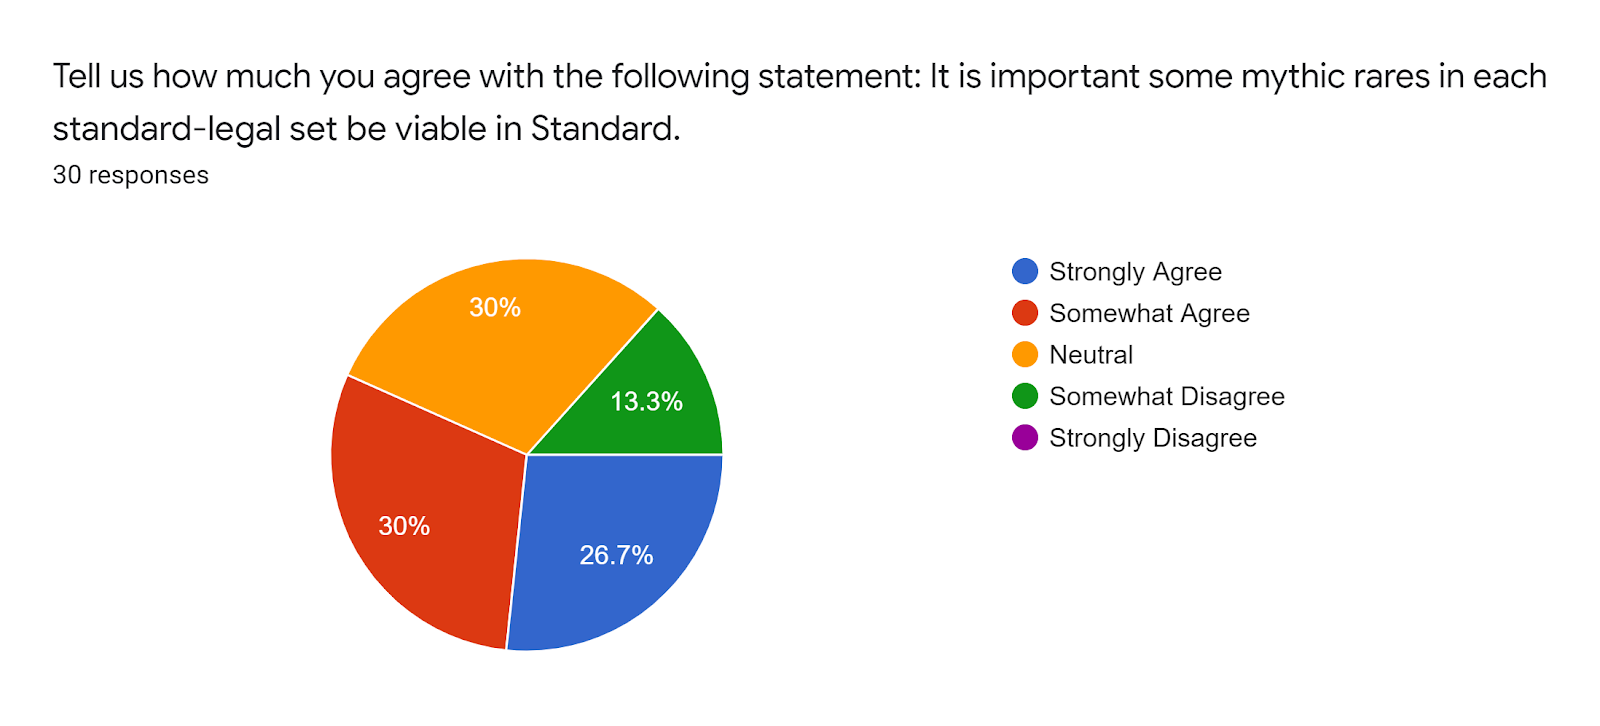 Forms response chart Question title Tell us how much you agree with the following statement It is important some mythic rares in each standard-legal set be viable in Standard Number of responses 30 responses